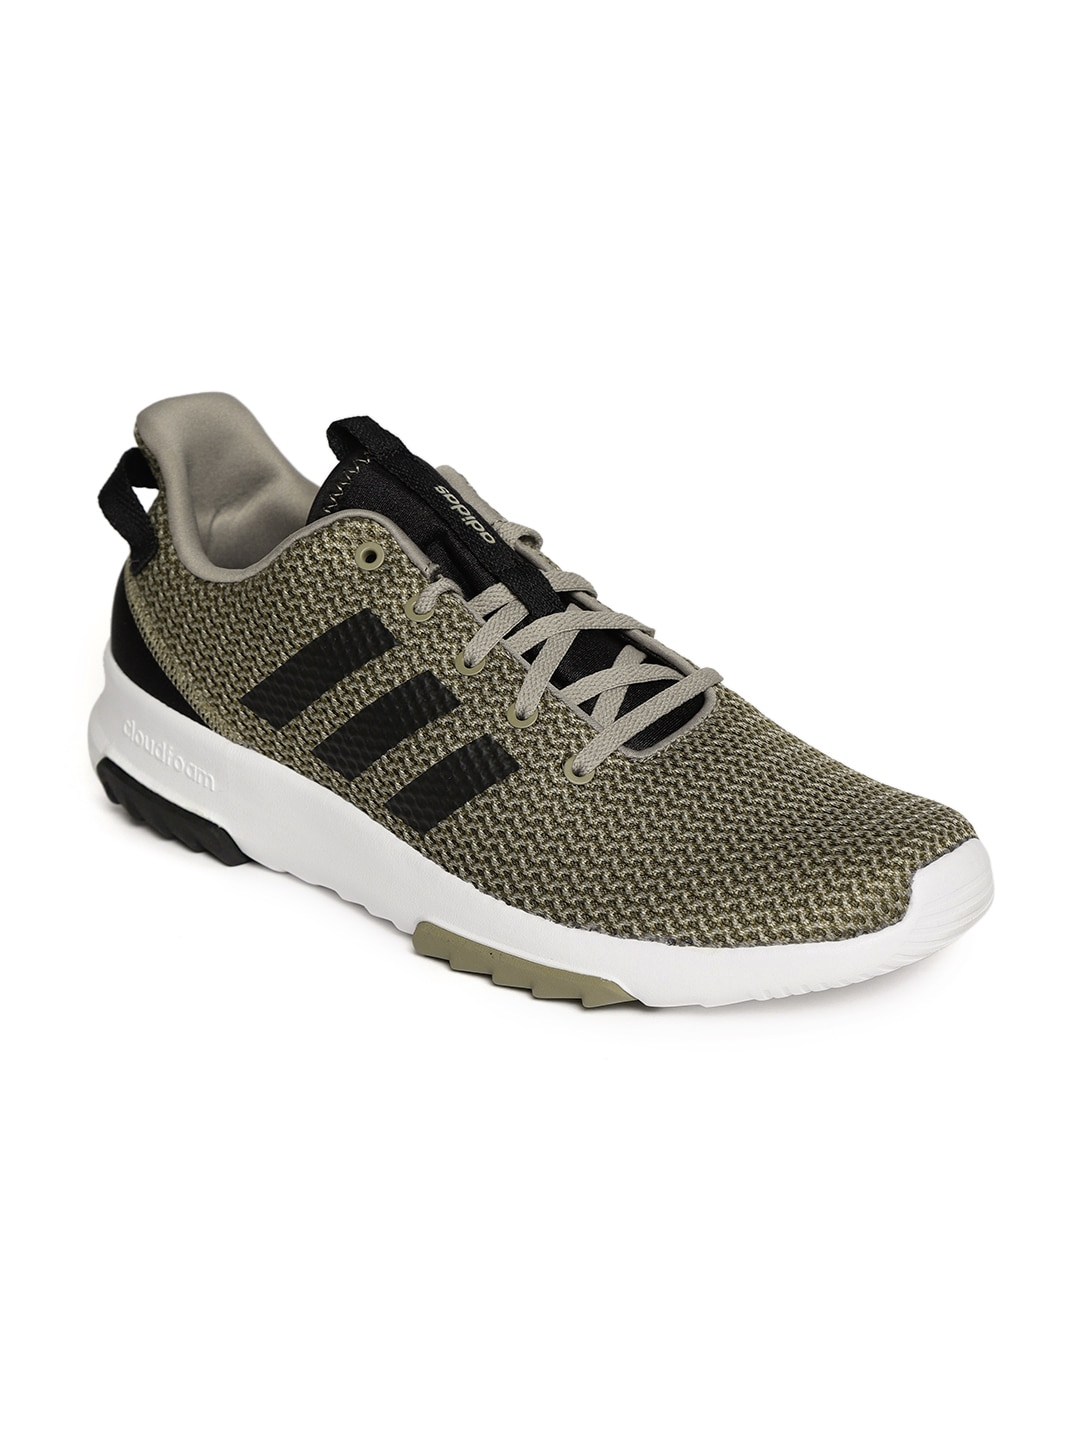 huge discount 0197f 77fd1 Adidas Shoes - Buy Adidas Shoes for Men  Women Online - Mynt